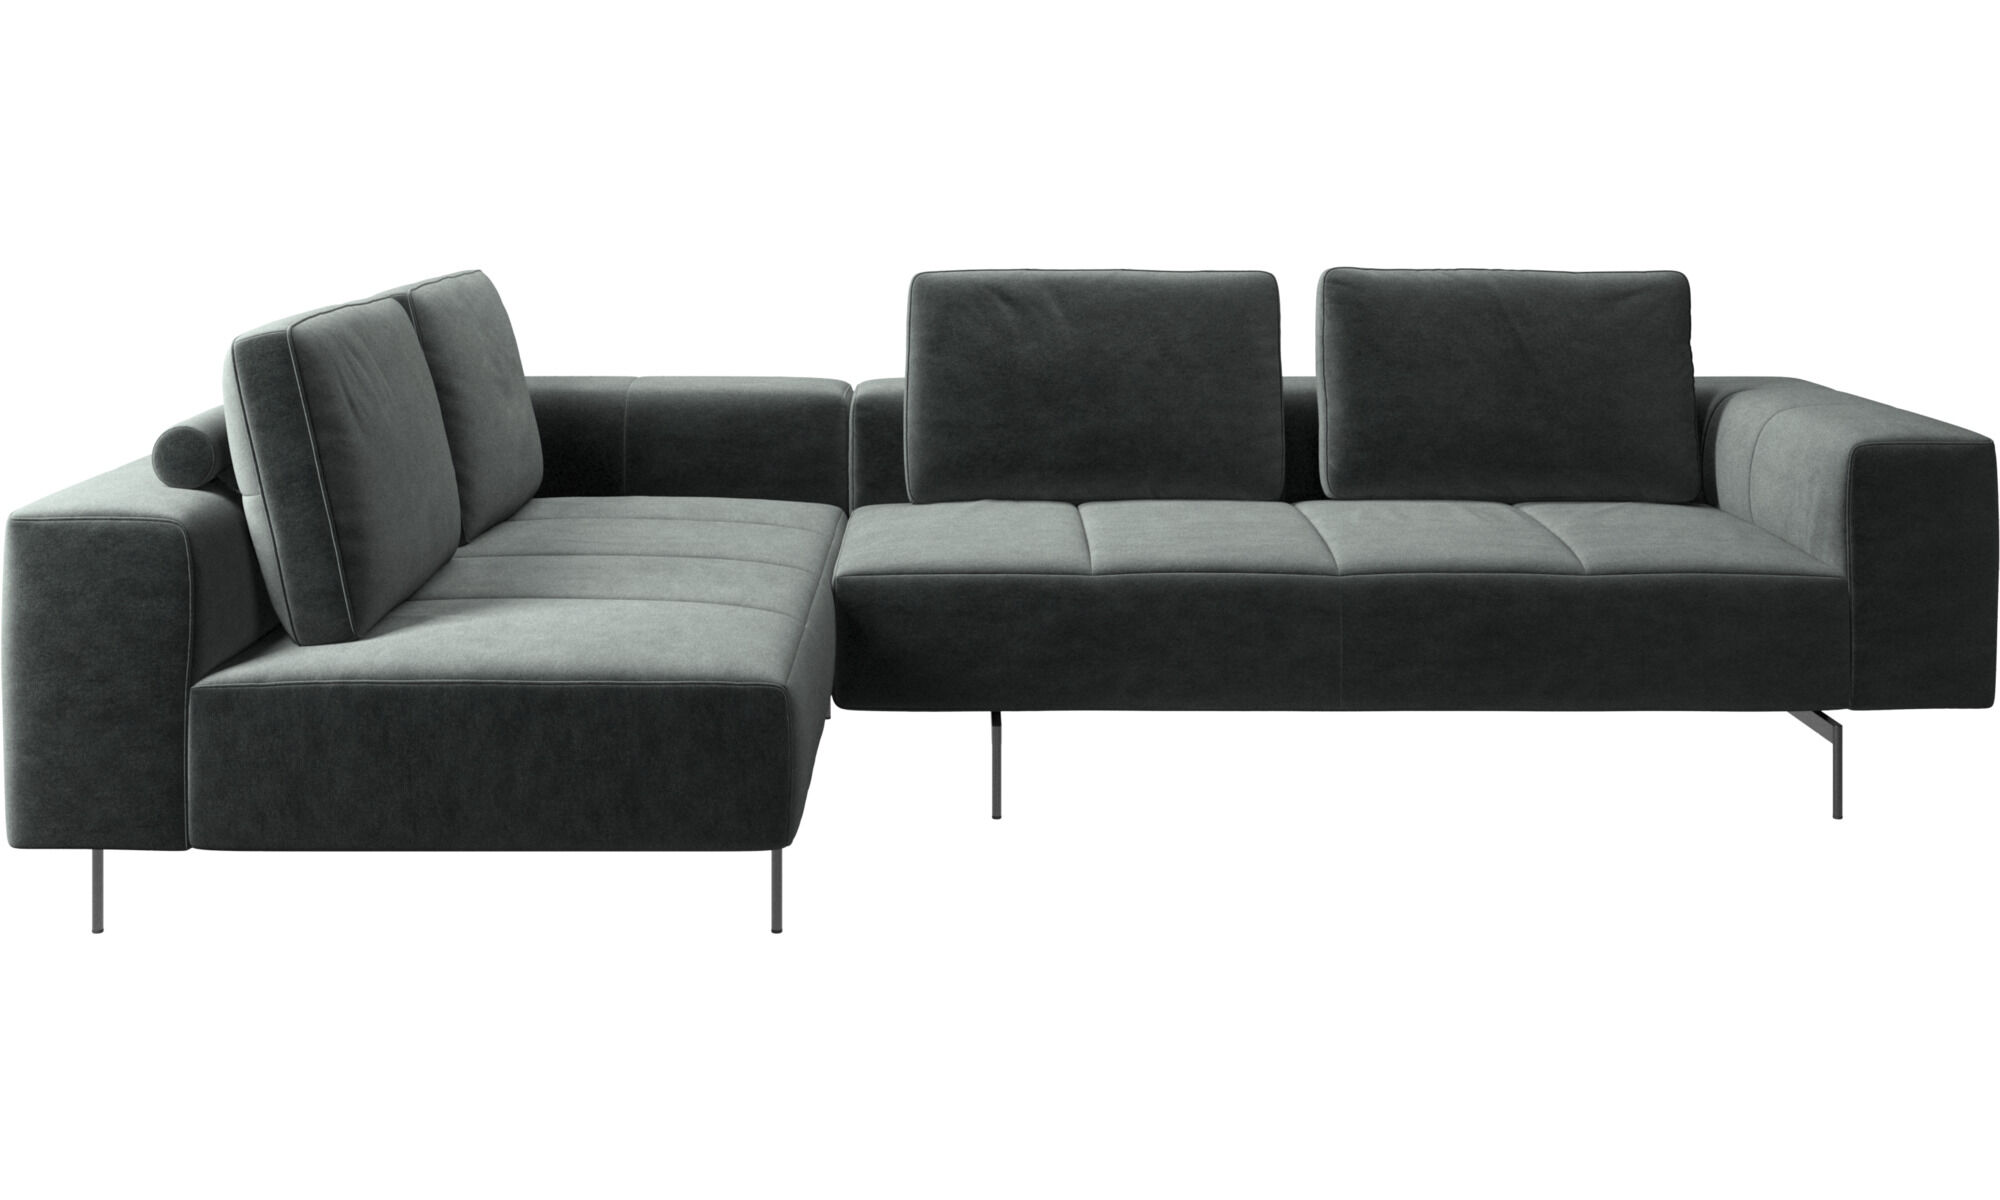 Corner Sofas   Amsterdam Corner Sofa With Lounging Unit   Green   Fabric.  Add To Favorites